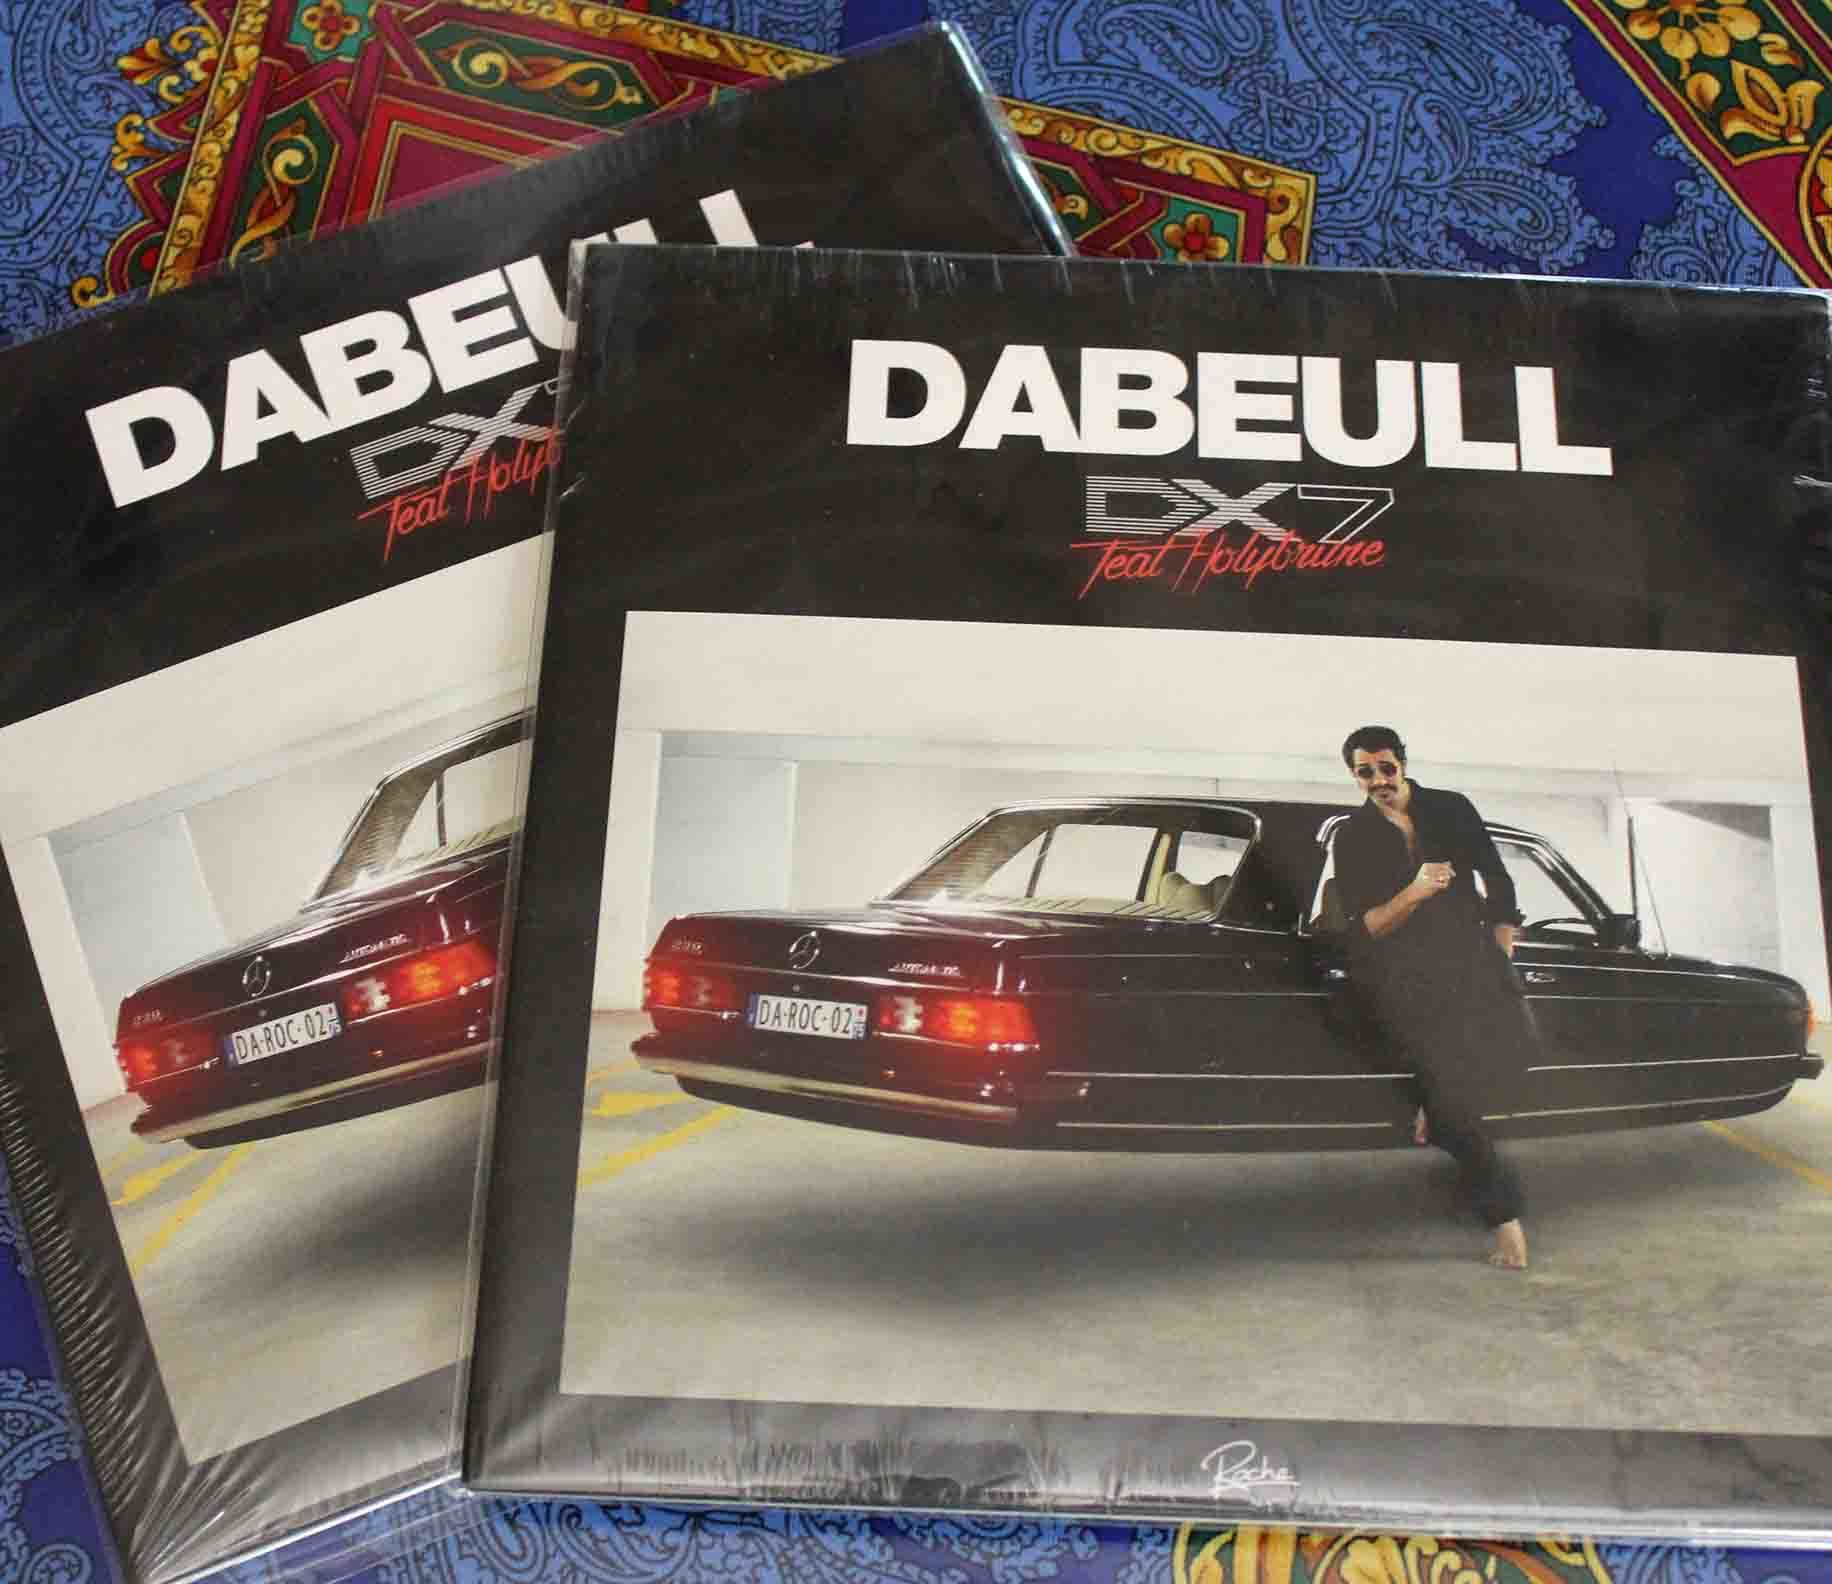 Dabeull – DX7 00